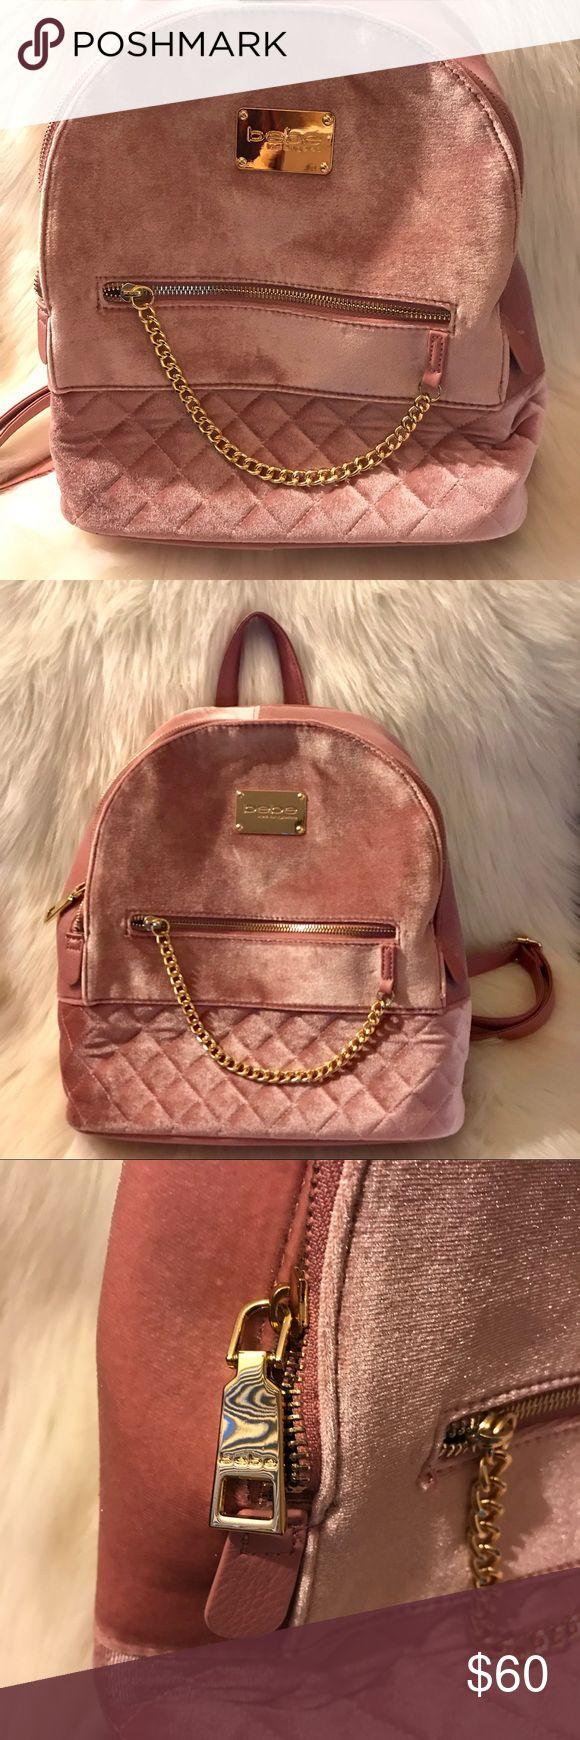 "Bebe Backpack Gina Large Velvet Large Blush Pink Retails for $109! Upgrade your backpack with this unique and stylish one. This backpack features super soft velvet fabric. Golden logo plate and zippers add an extra layer of shine to this piece. Has adjustable shoulder straps. Makes the perfect gift this holiday season. Bundle to save!  11.5"" L X 12.5"" H X 4.5"" D Top carry handle Adjustable shoulder straps Interior: 2 slip pockets, 1 zipper pocket Exterior: 2 slip pockets, 1 zipper pocket Top…"